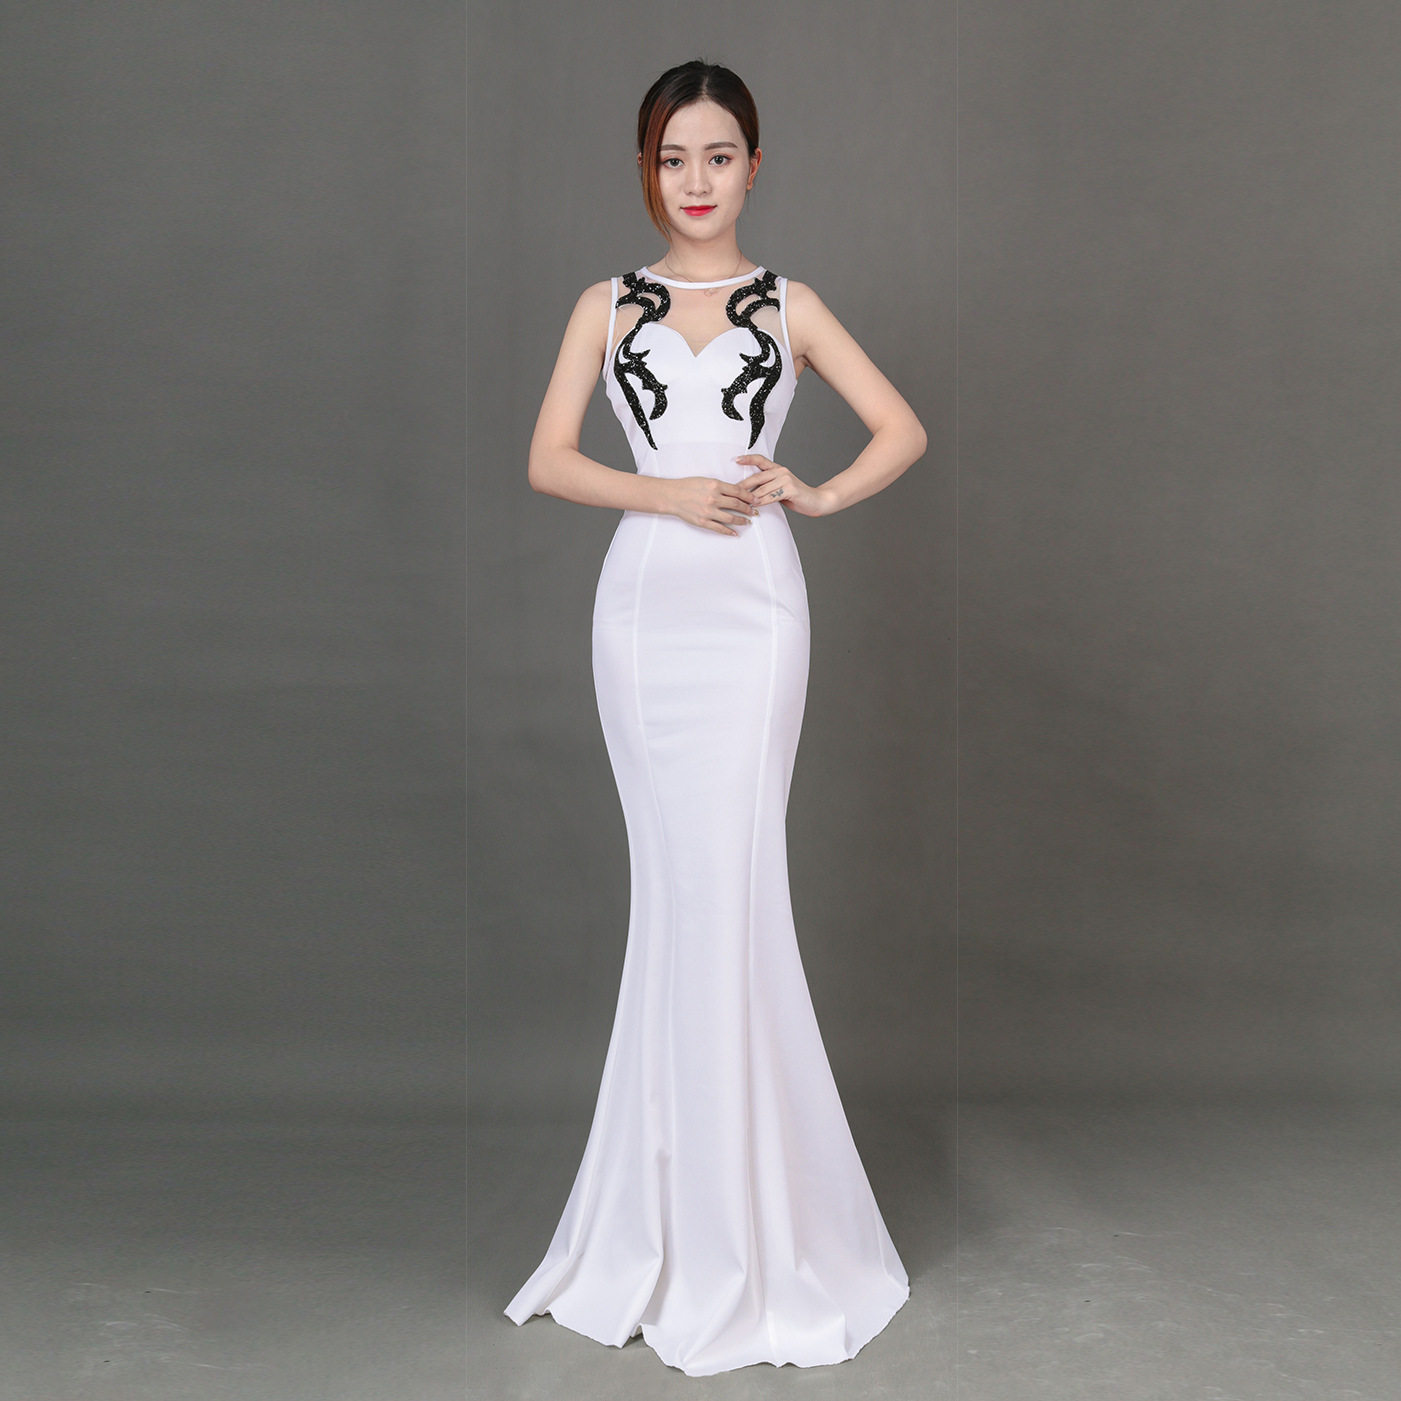 8175 #-Slim Fit Host Annual General Meeting Car Model Nightclub Catwalks Banquet Slimming Fashion Fishtail Evening Dress